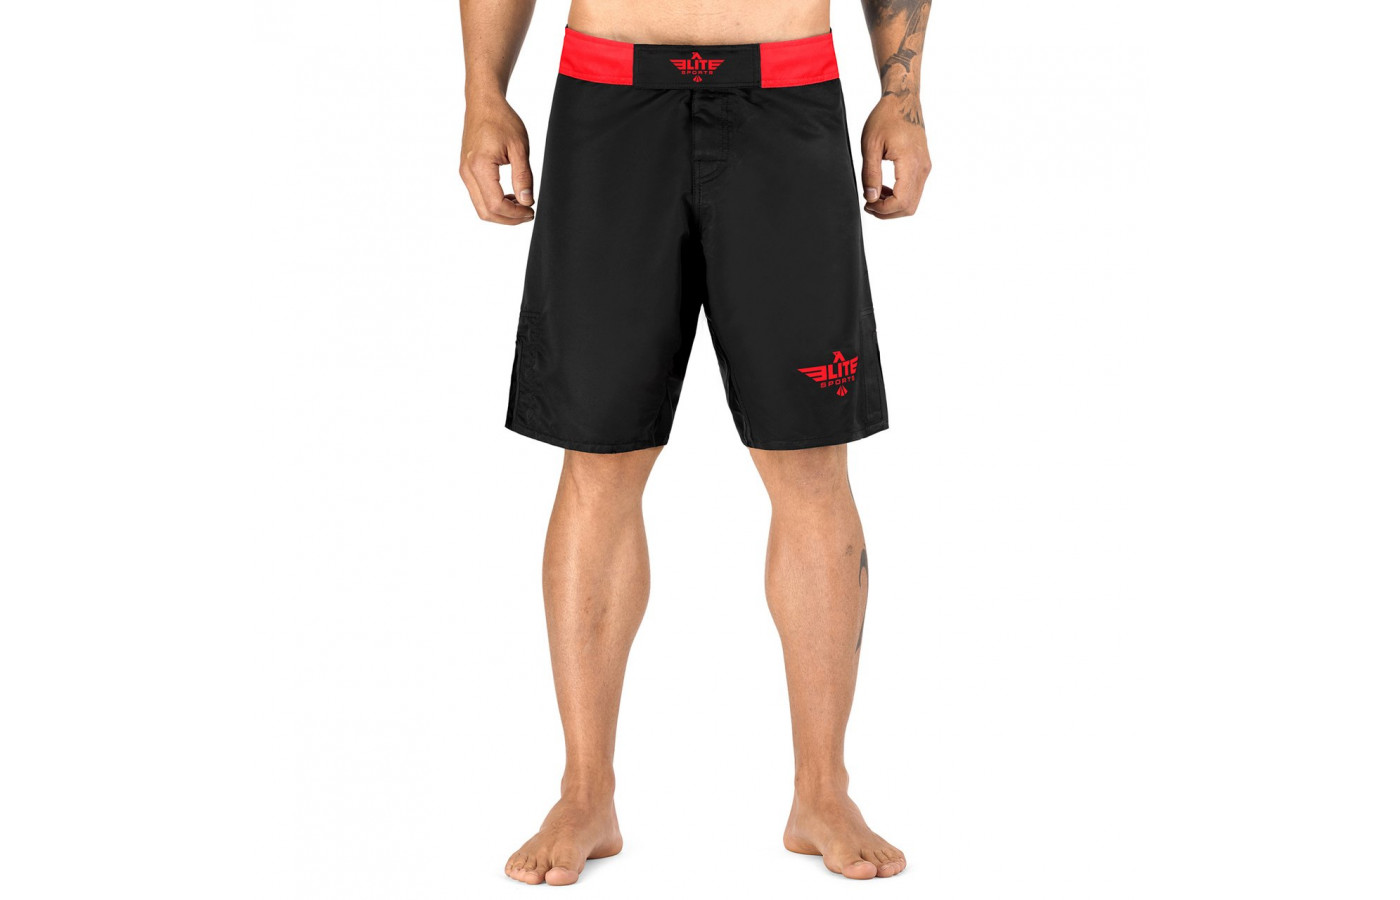 Elite Sports Trunks Front red